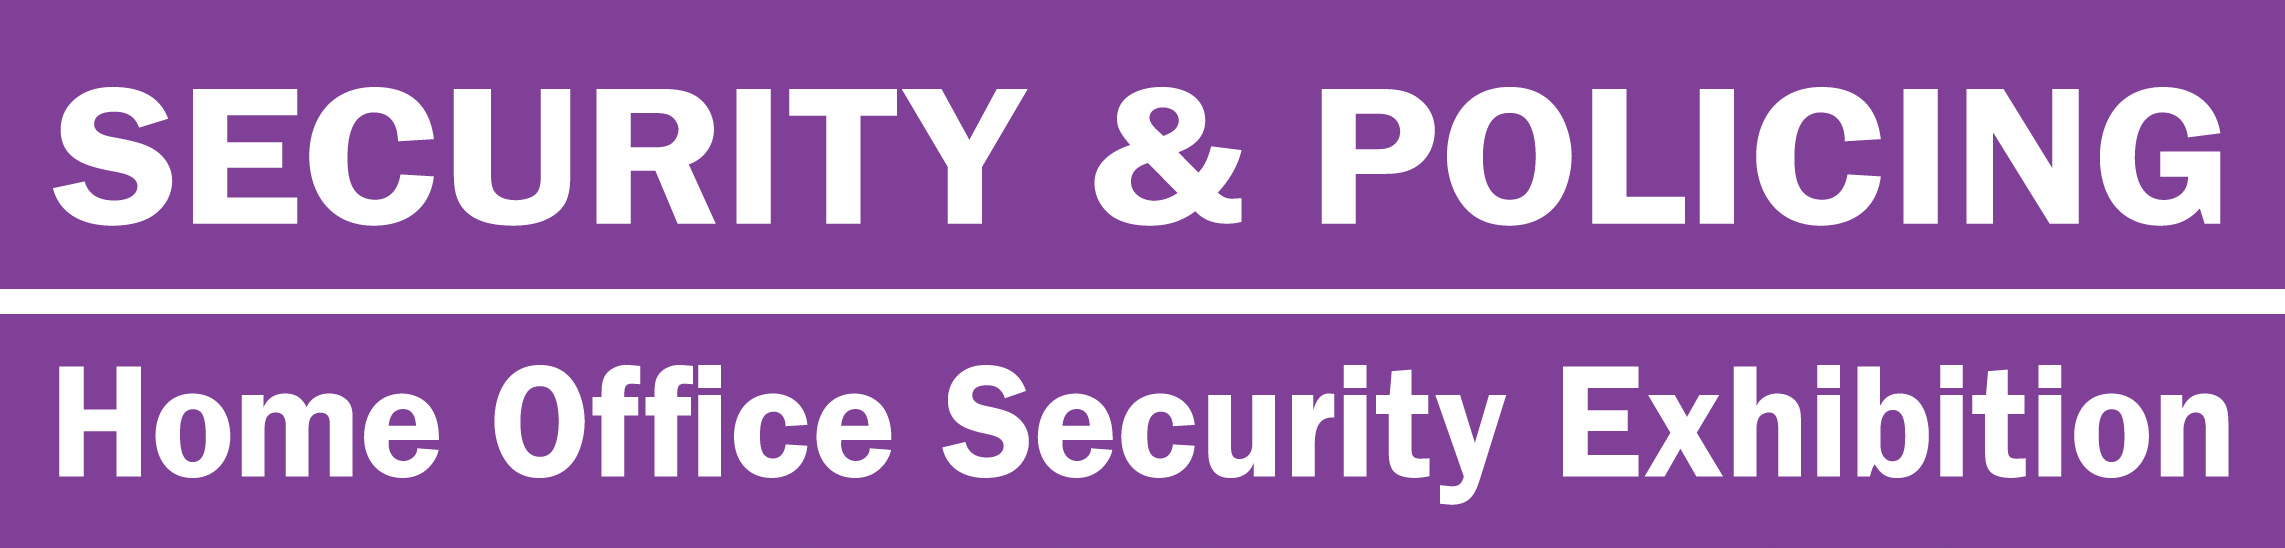 IPS exhibitor at Security and Policing 2019